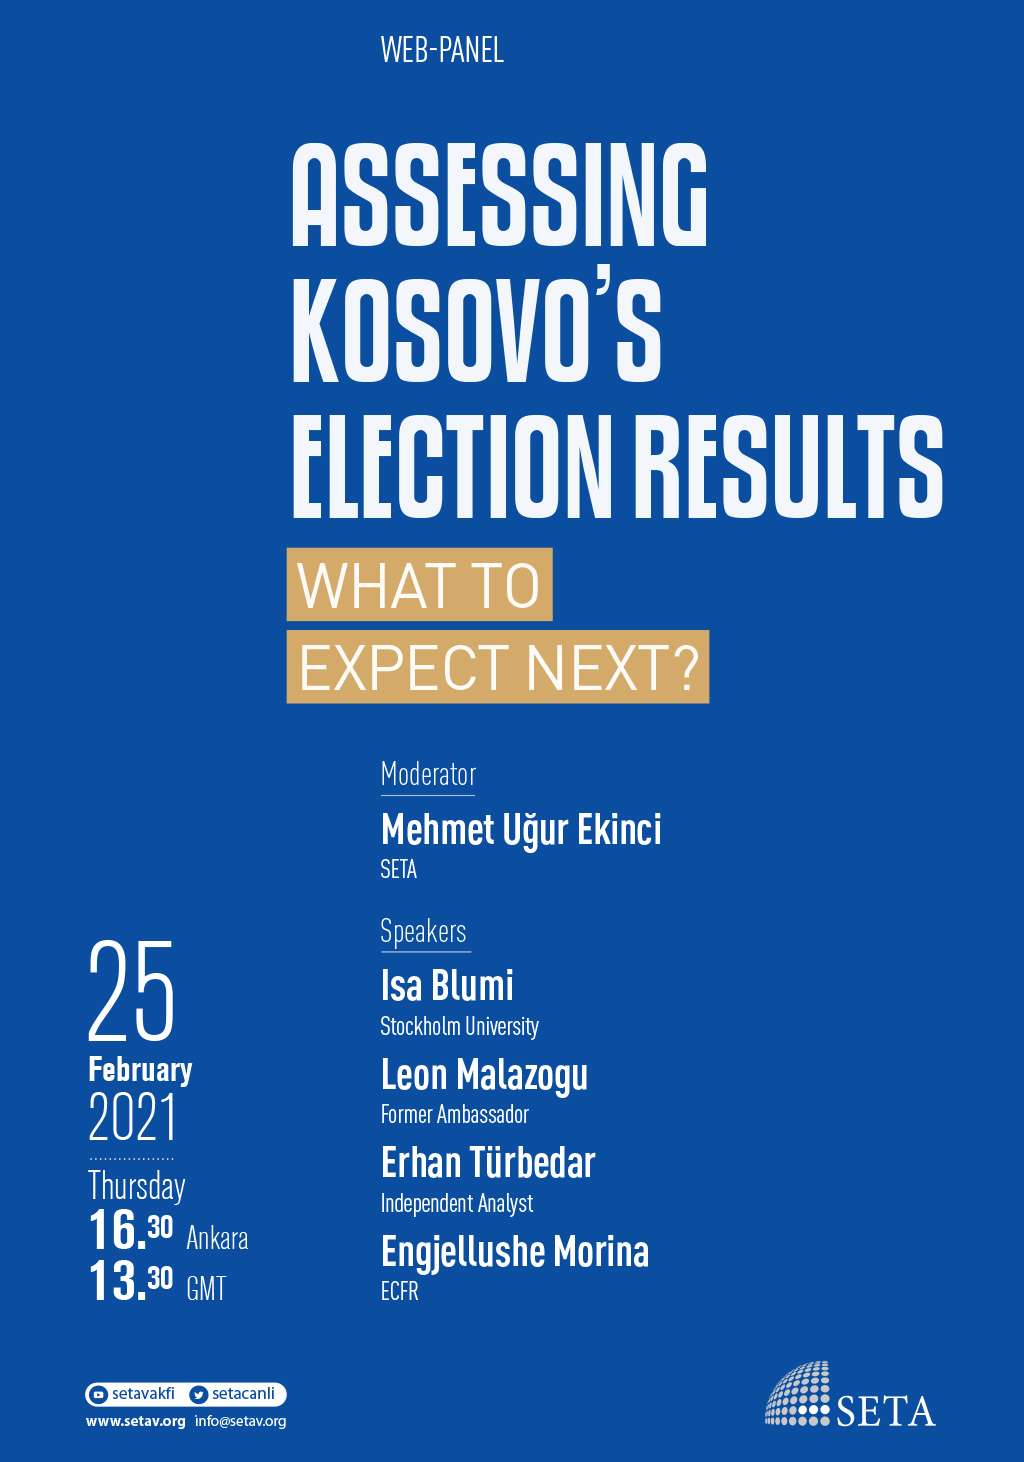 Web Panel: Assessing Kosovo's Election Results: What to Expect Next?